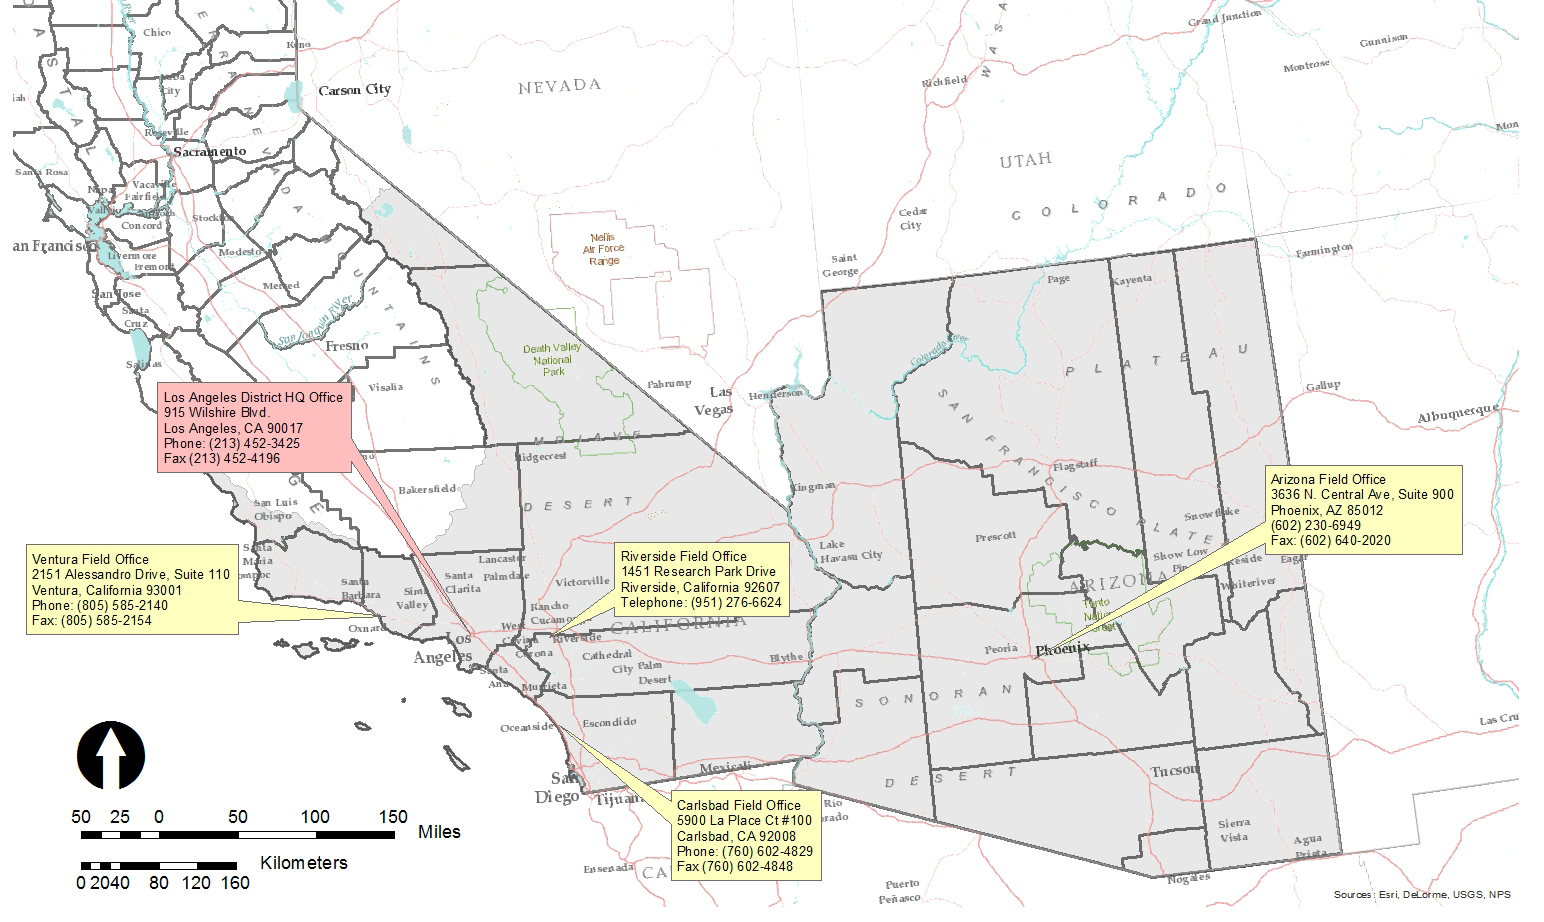 Map Of California Missions Locations.Los Angeles District Missions Regulatory District Boundaries Map